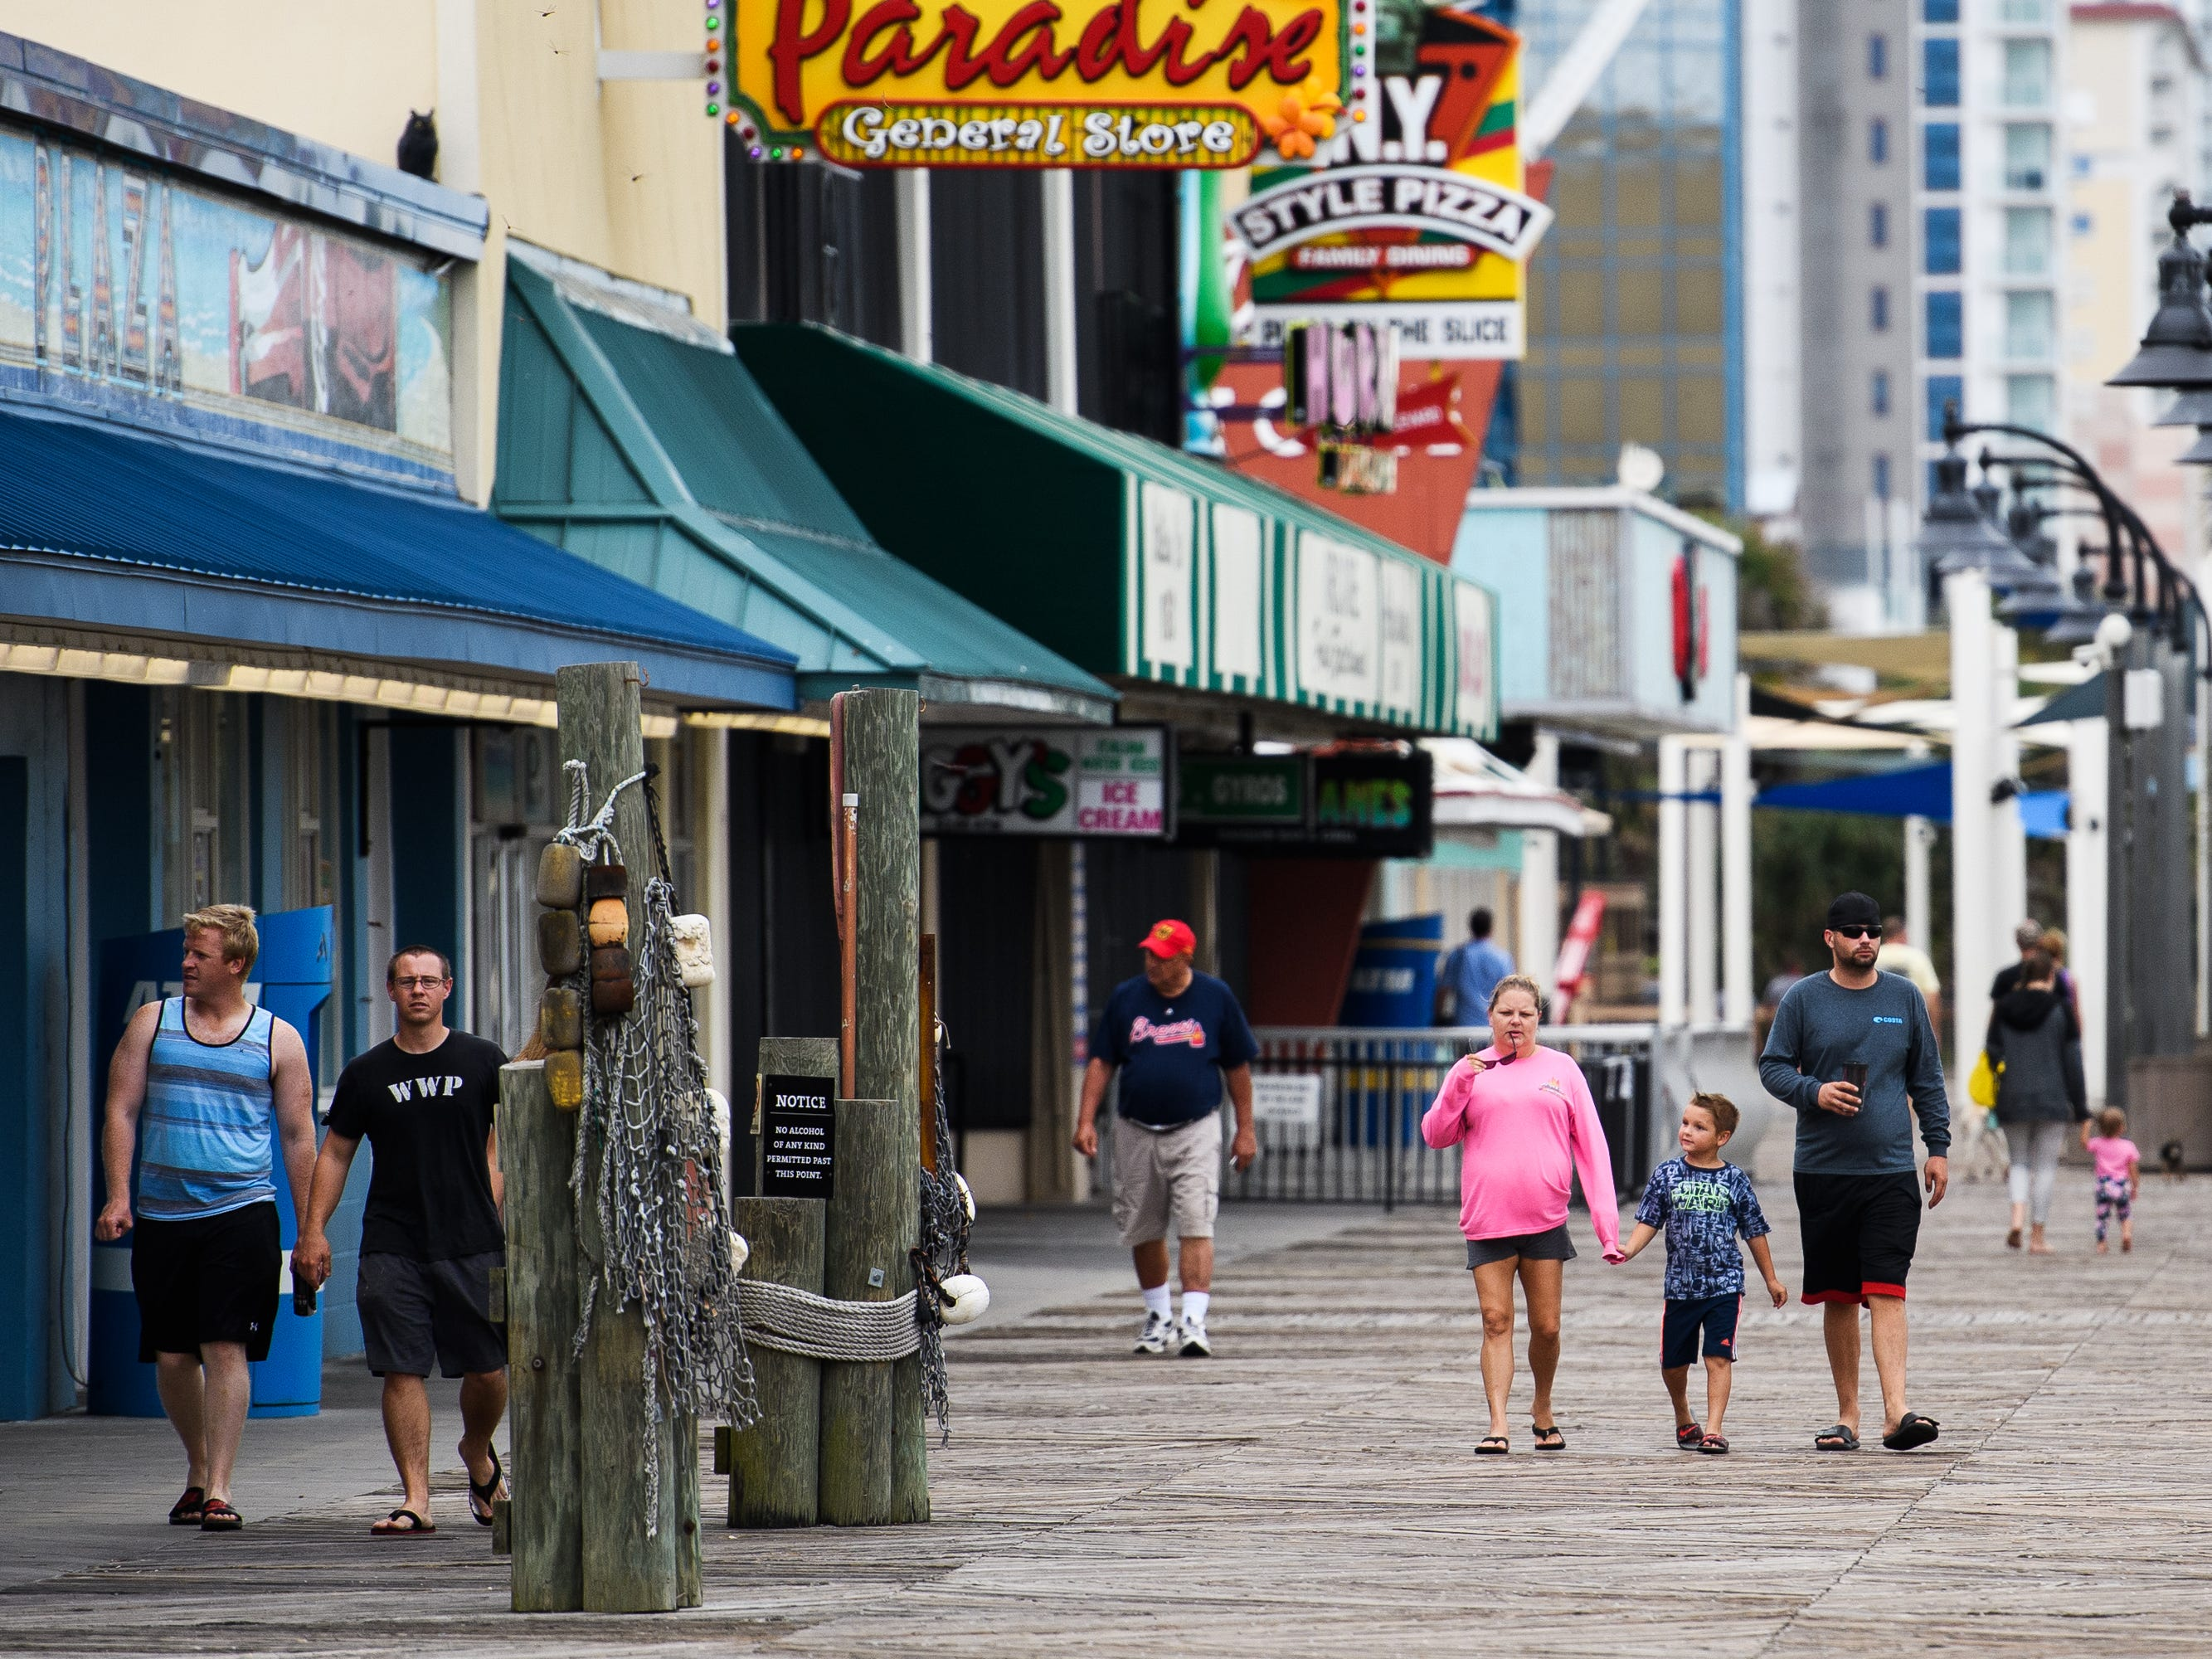 Myrtle Beach residents enjoy the Myrtle Beach Boardwalk and Promenade on Thursday, Sept. 13, 2018 before Hurricane Florence is expected to hit.